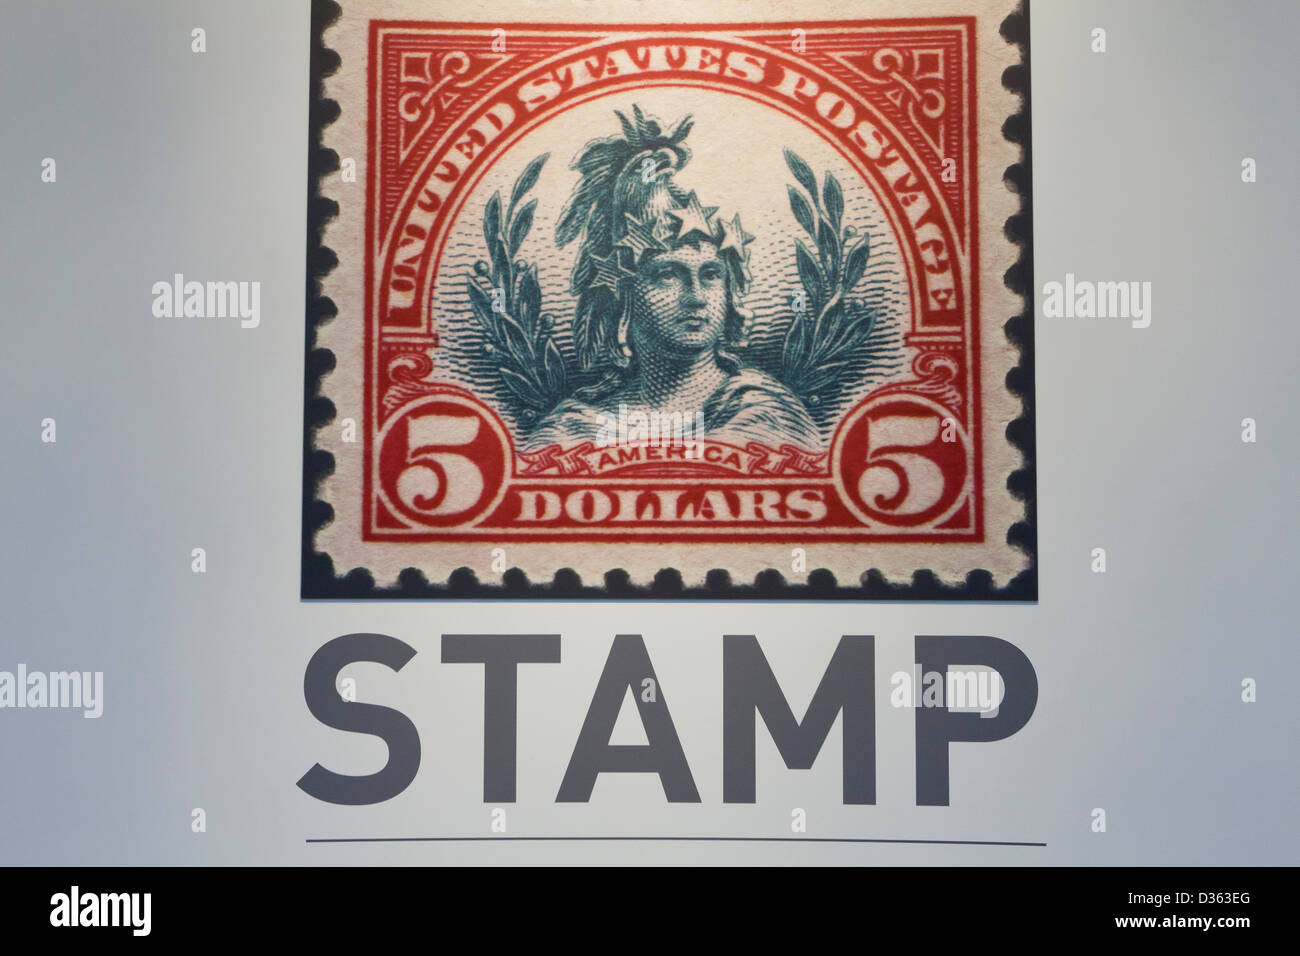 Stamp - Stock Image